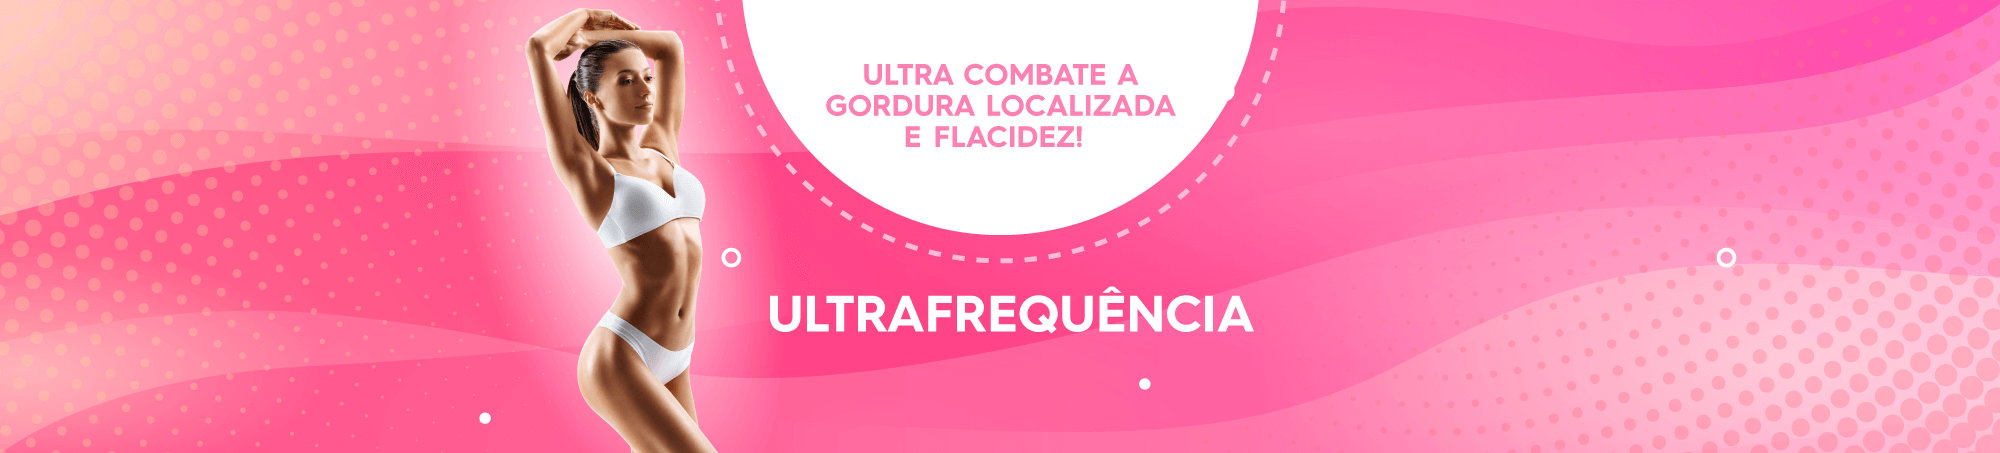 Ultrafrequencia-Fisest-site